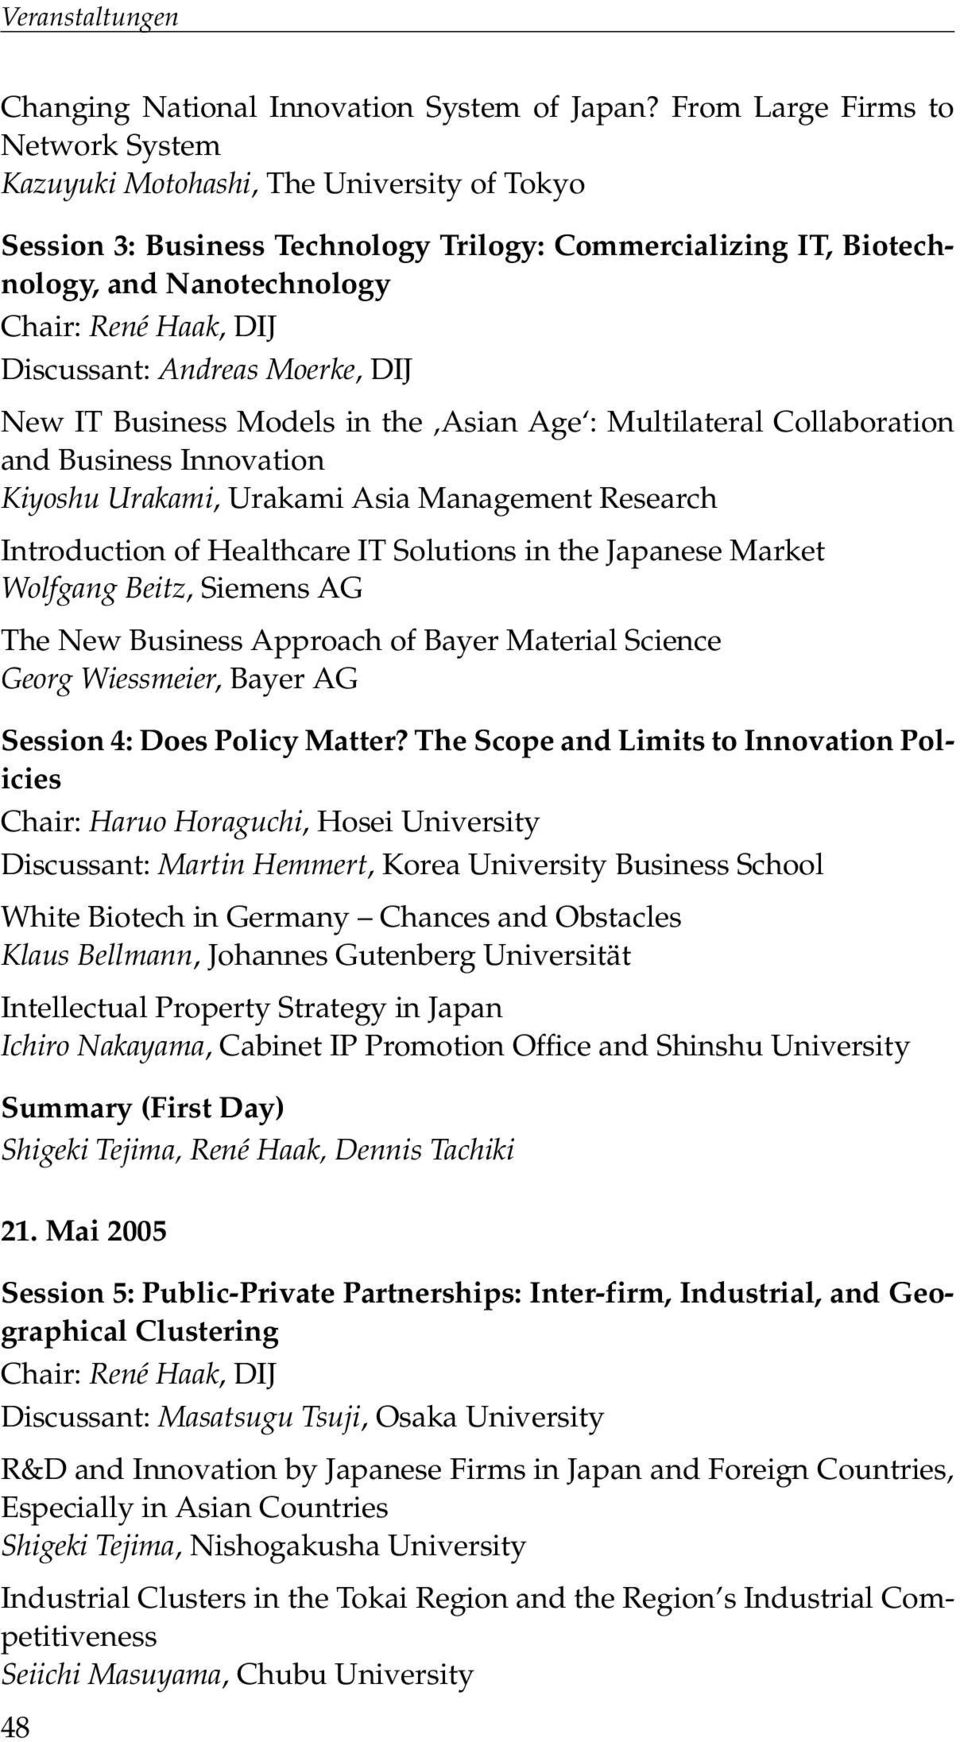 Discussant: Andreas Moerke, DIJ New IT Business Models in the Asian Age : Multilateral Collaboration and Business Innovation Kiyoshu Urakami, Urakami Asia Management Research Introduction of